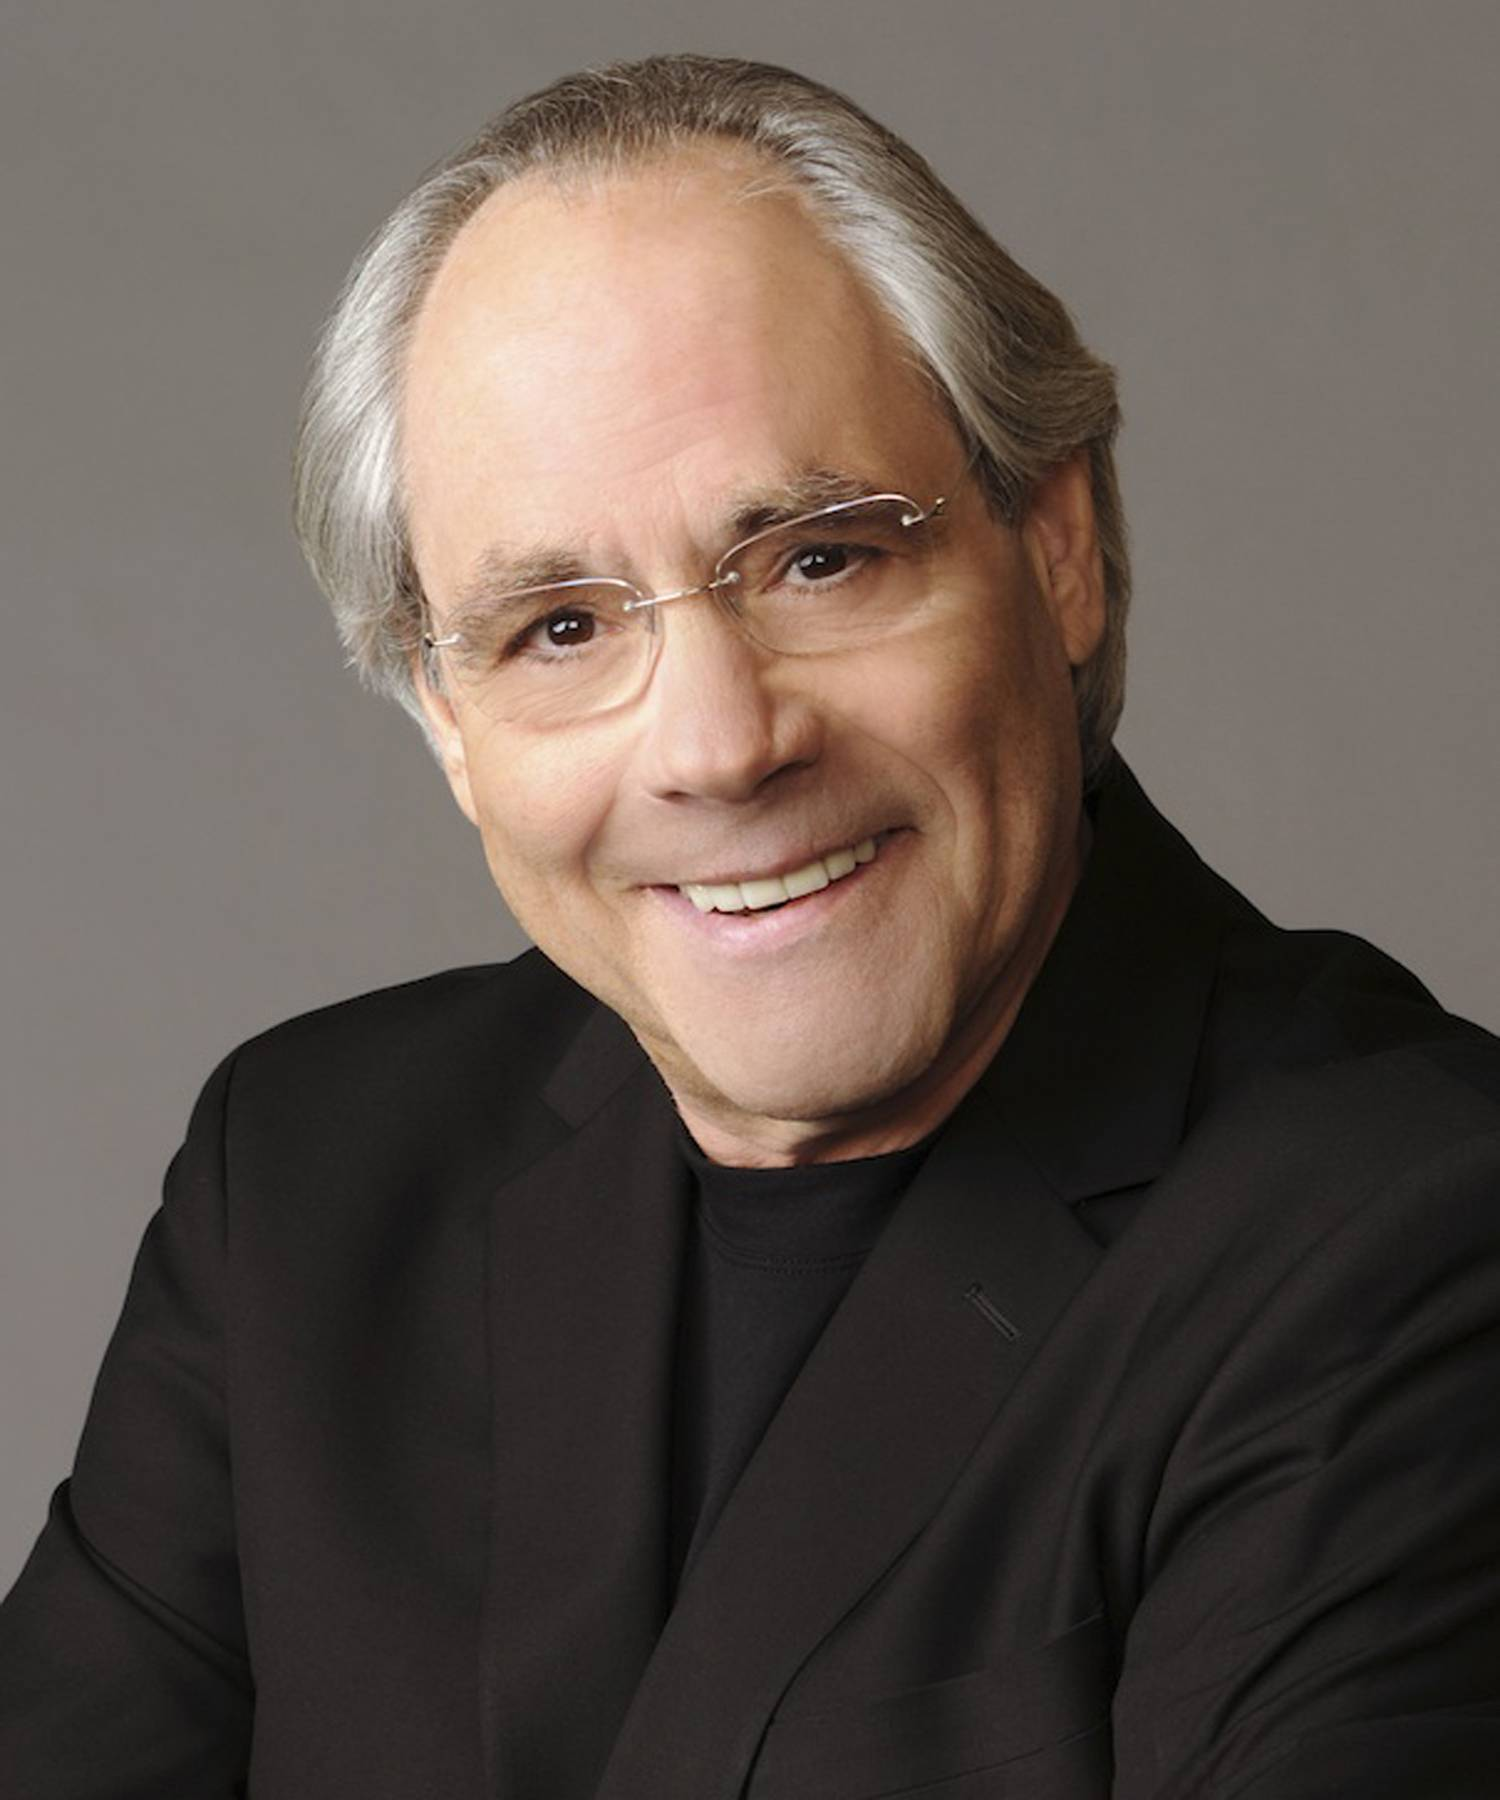 Comedian Robert Klein performs at the Raue Center for the Arts in Crystal Lake on Saturday, April 5.